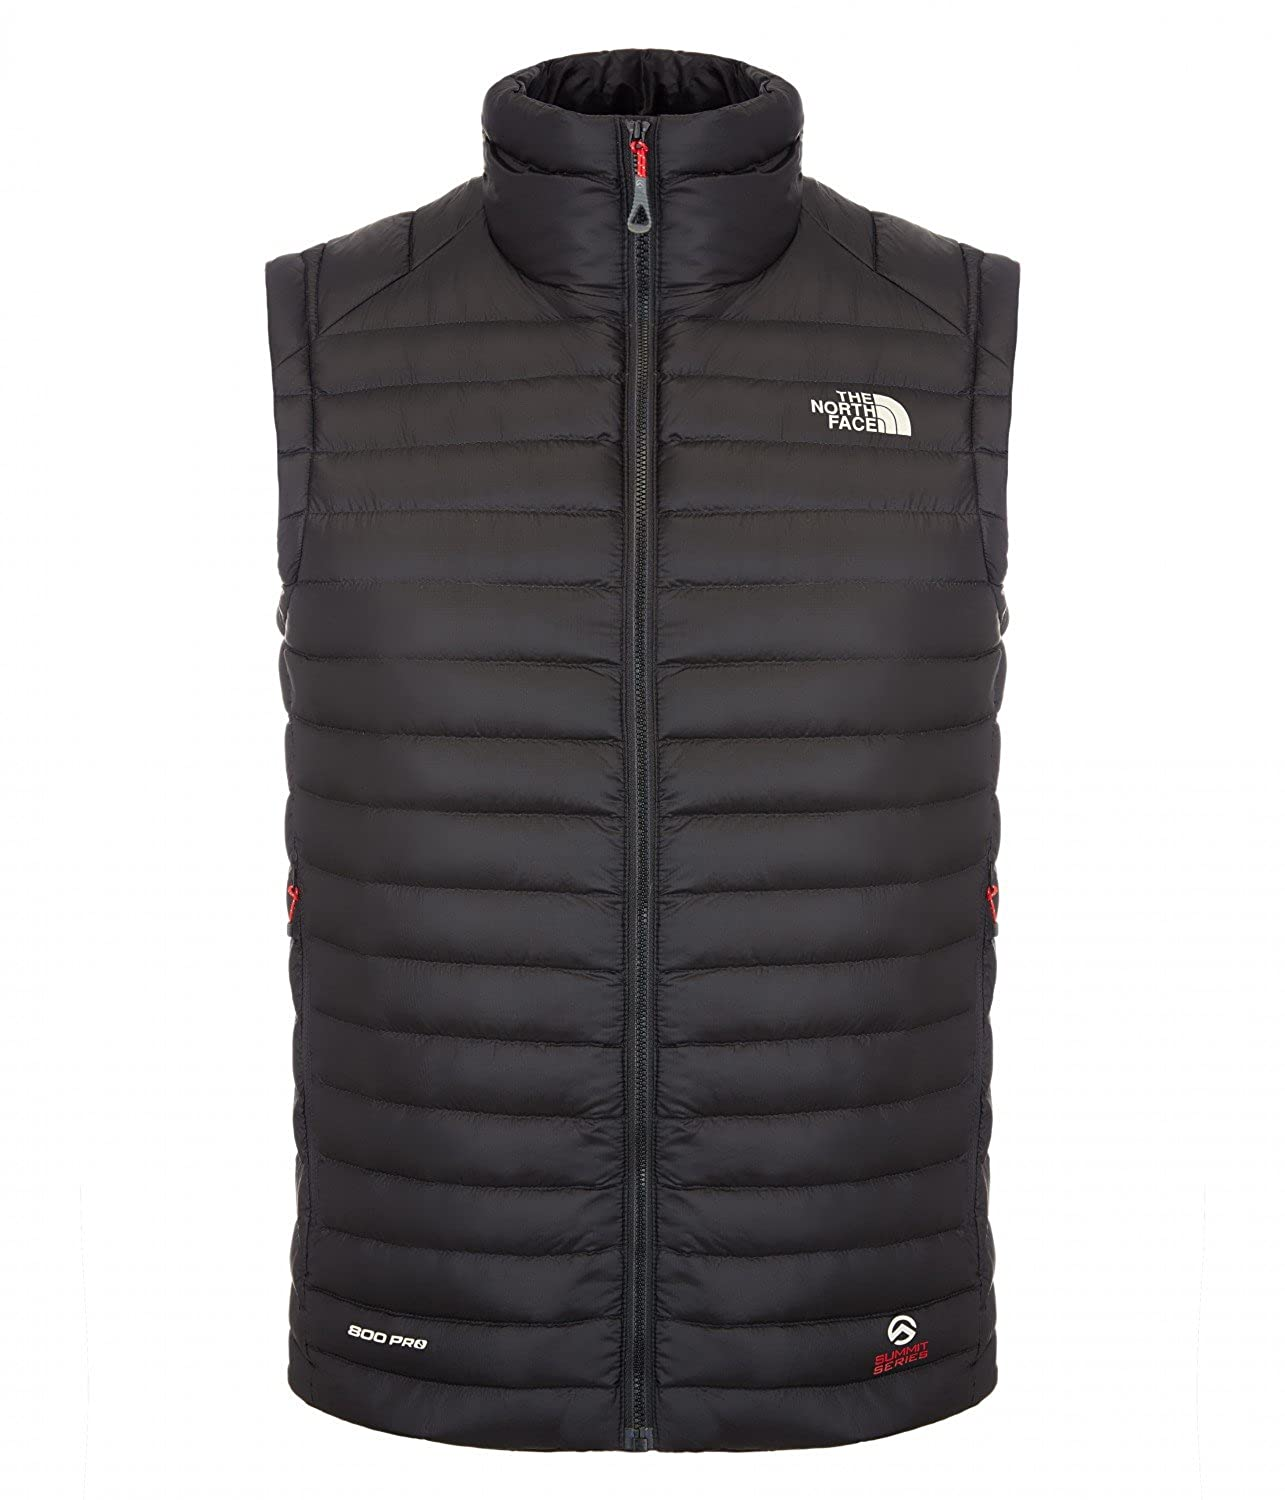 The North Face M Quince Vest - TNF Black - XS - Mens warm versatile Summit  Series  down vest  Amazon.co.uk  Clothing 457becd6c